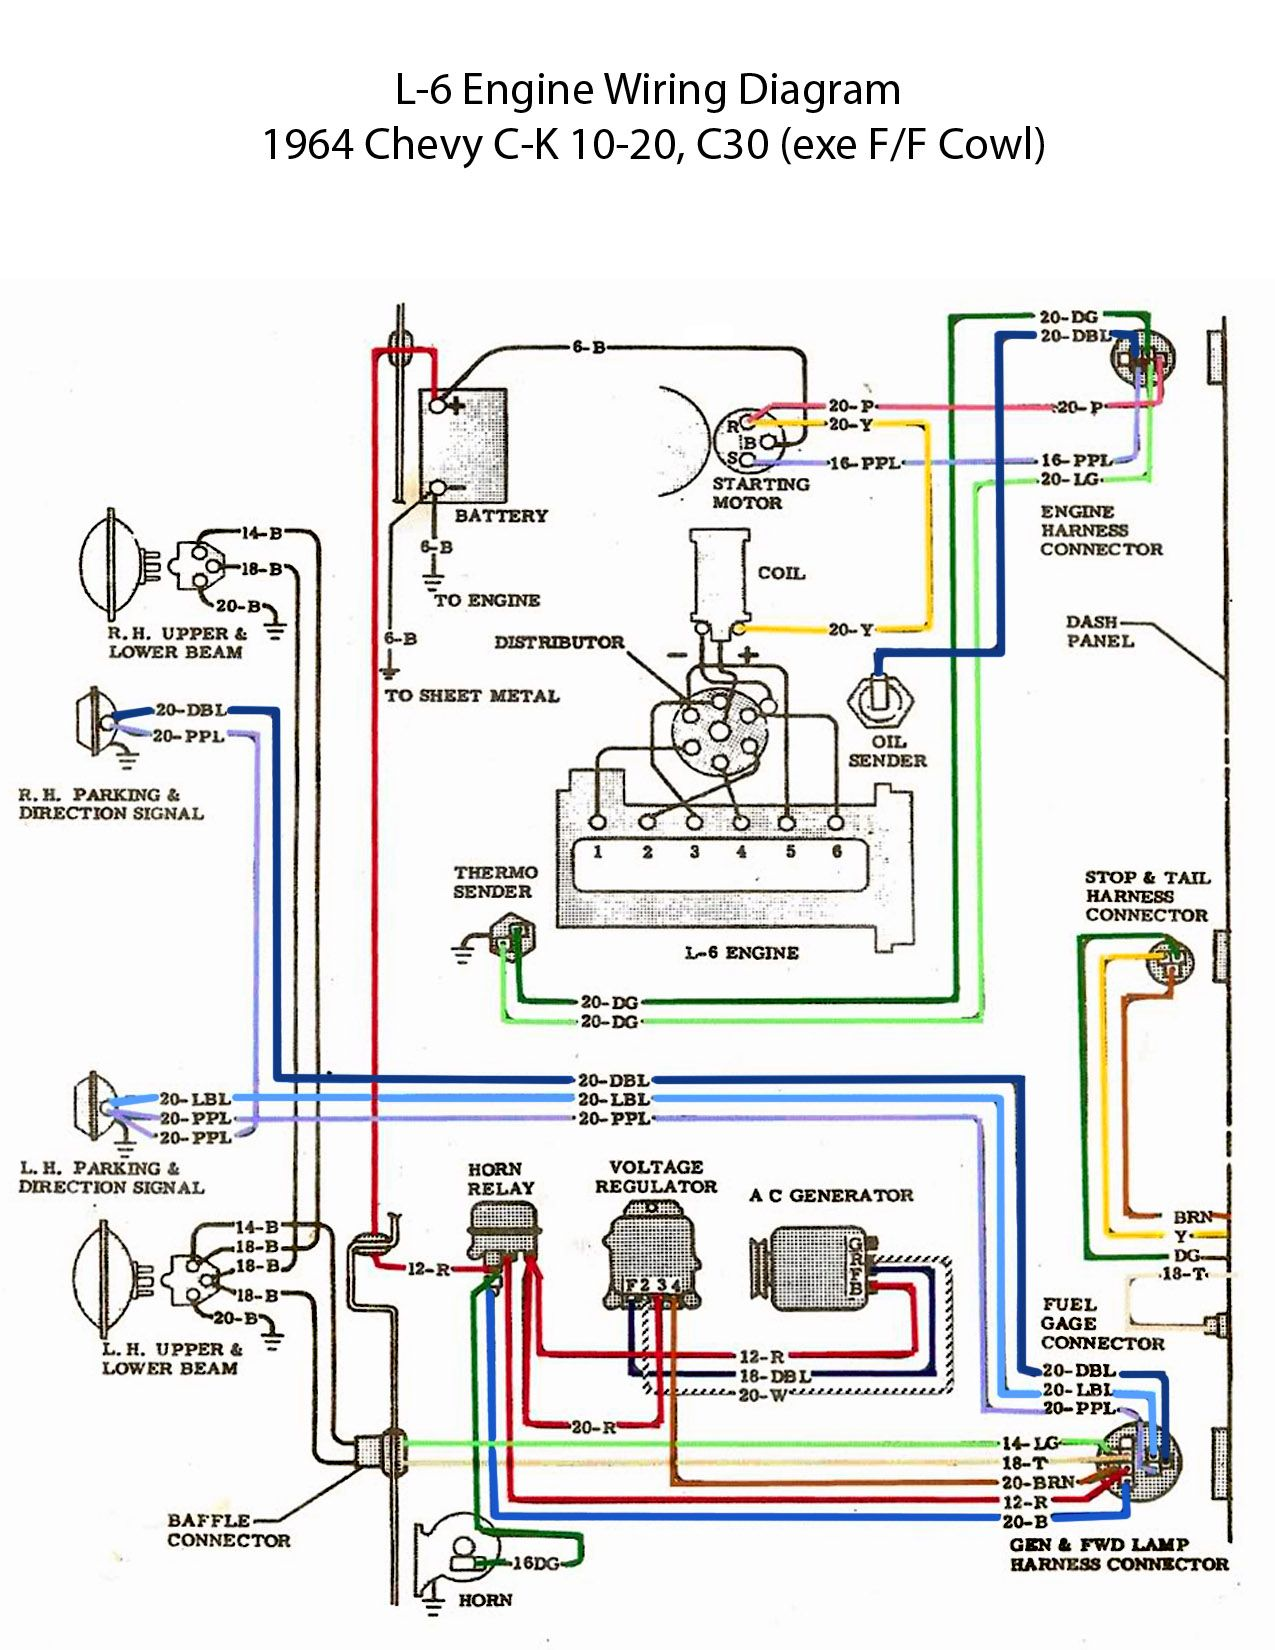 electric l 6 engine wiring diagram \u002760s chevy c10 wiringelectric l 6 engine wiring diagram 2000 chevy silverado, 1965 chevy c10,